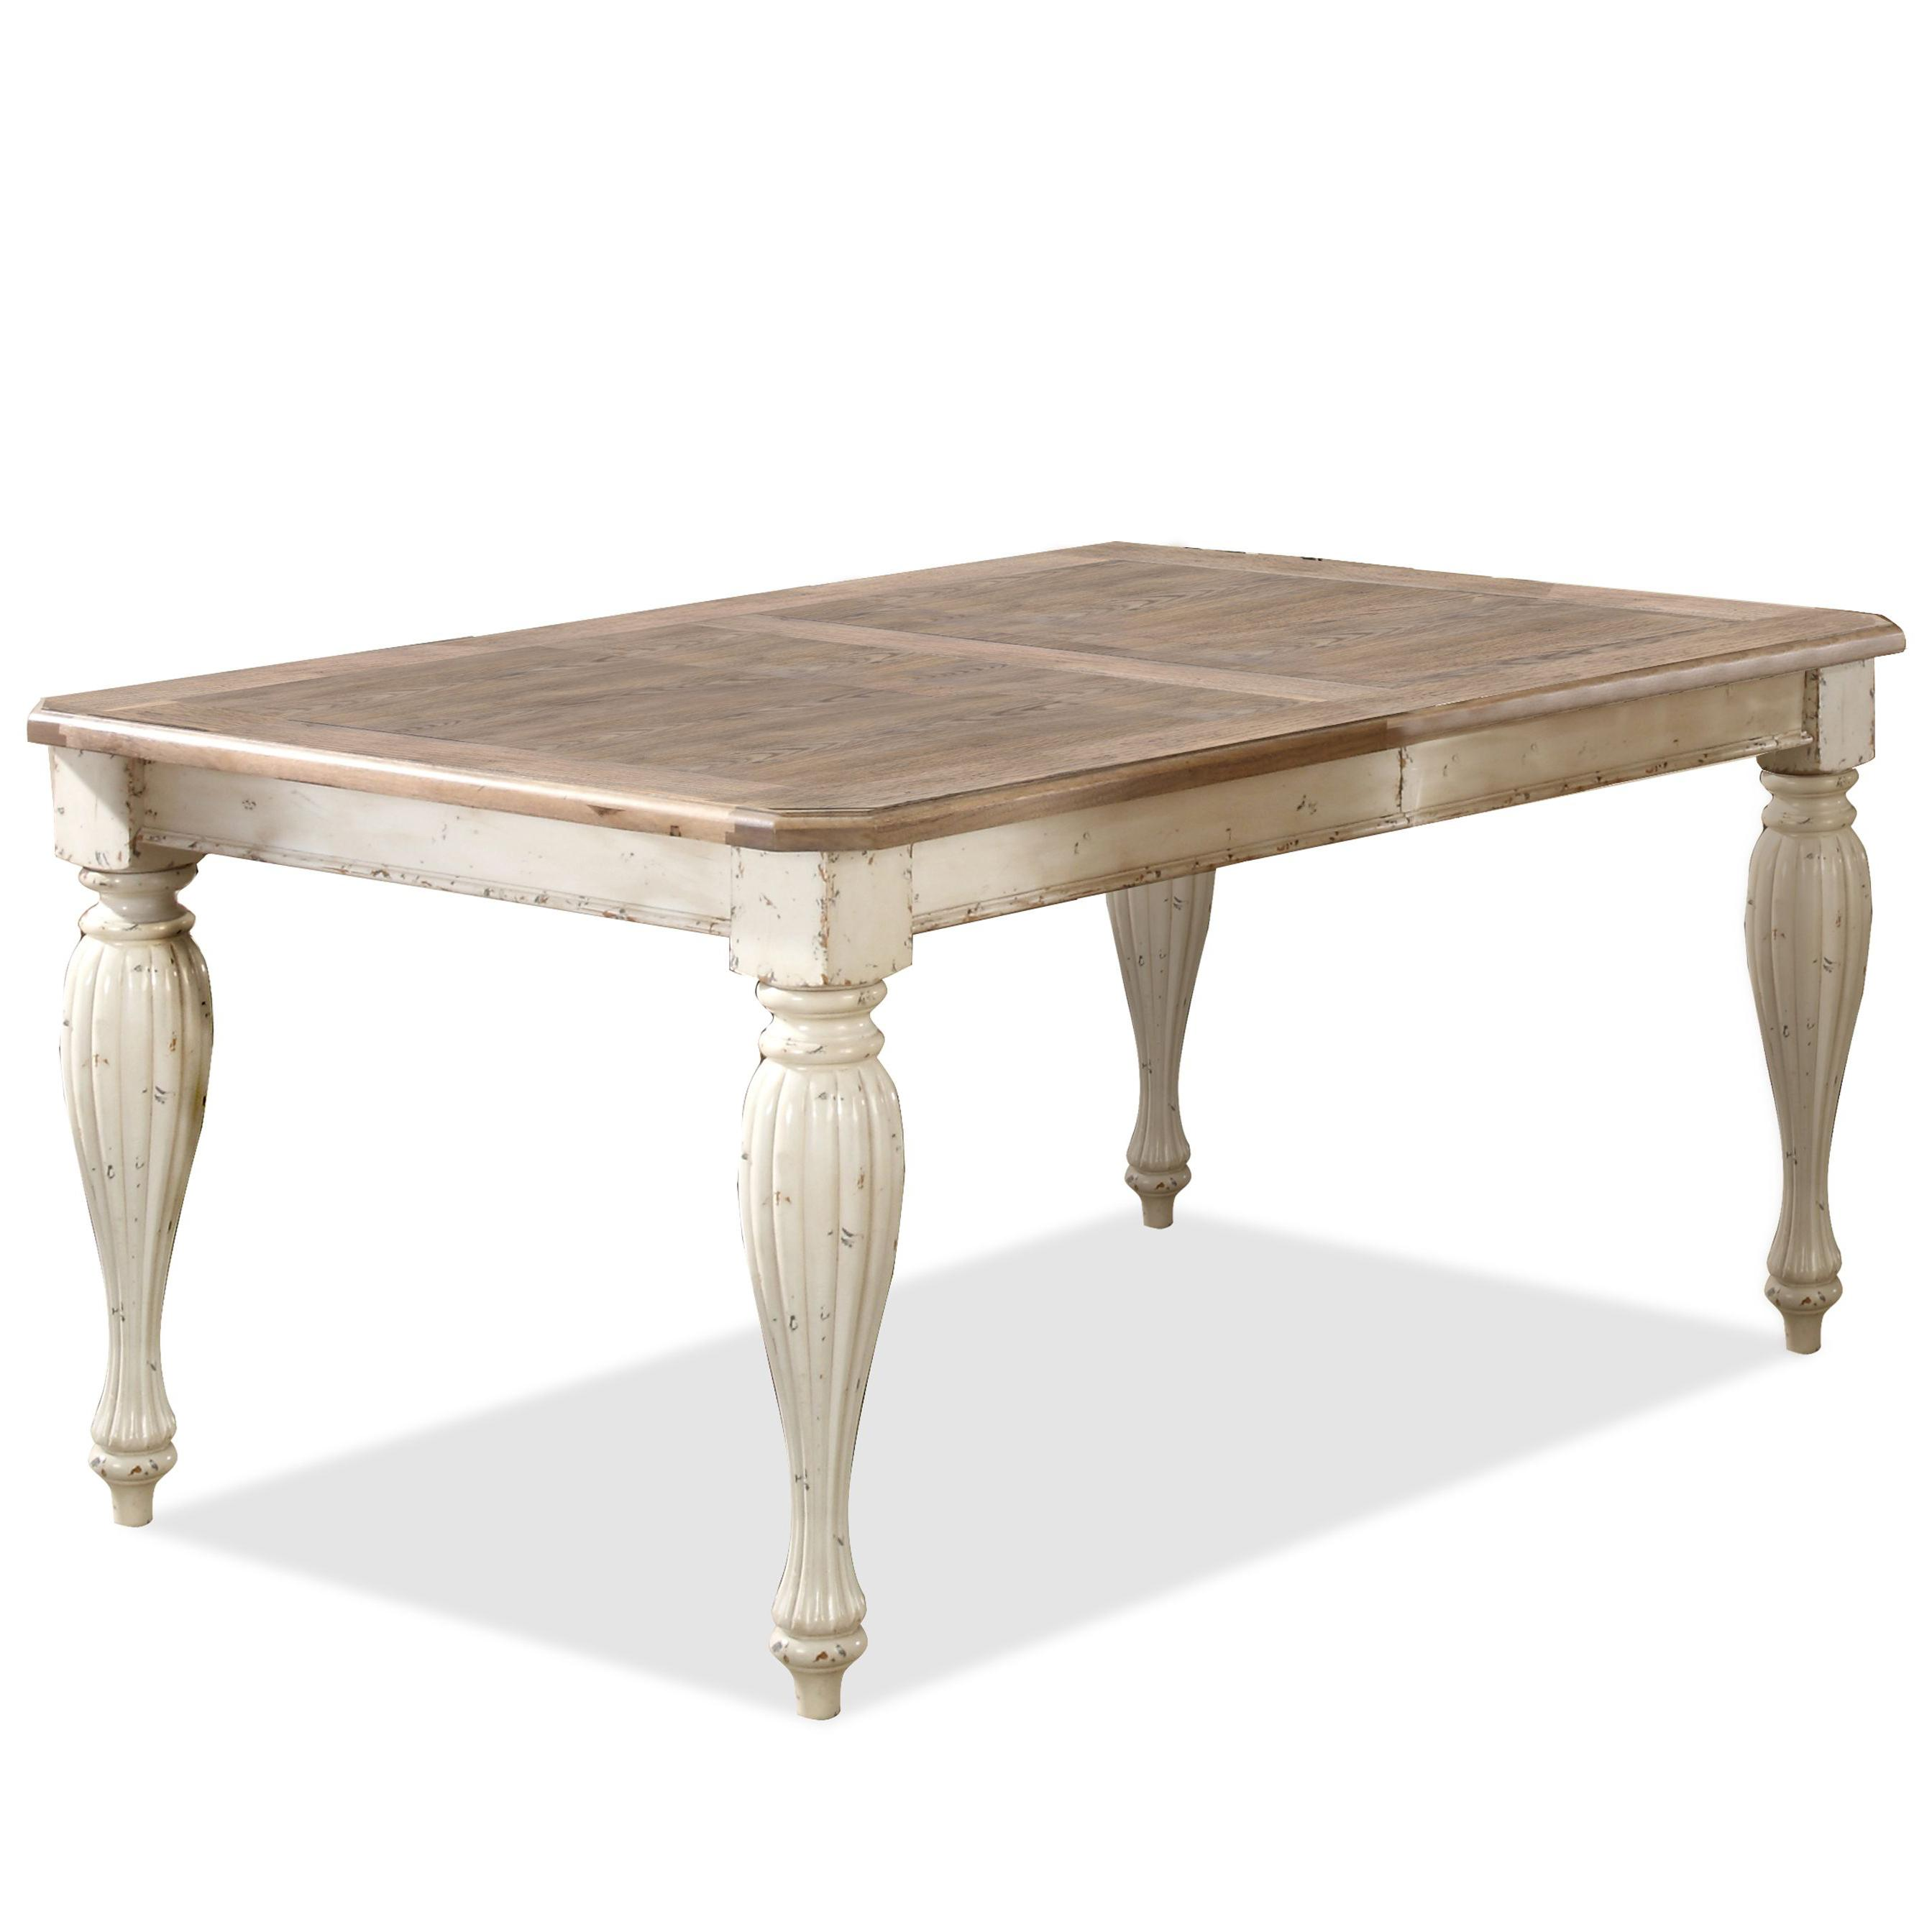 Riverside furniture coventry two tone 32550 rectangular for Rectangular dining room tables with leaves